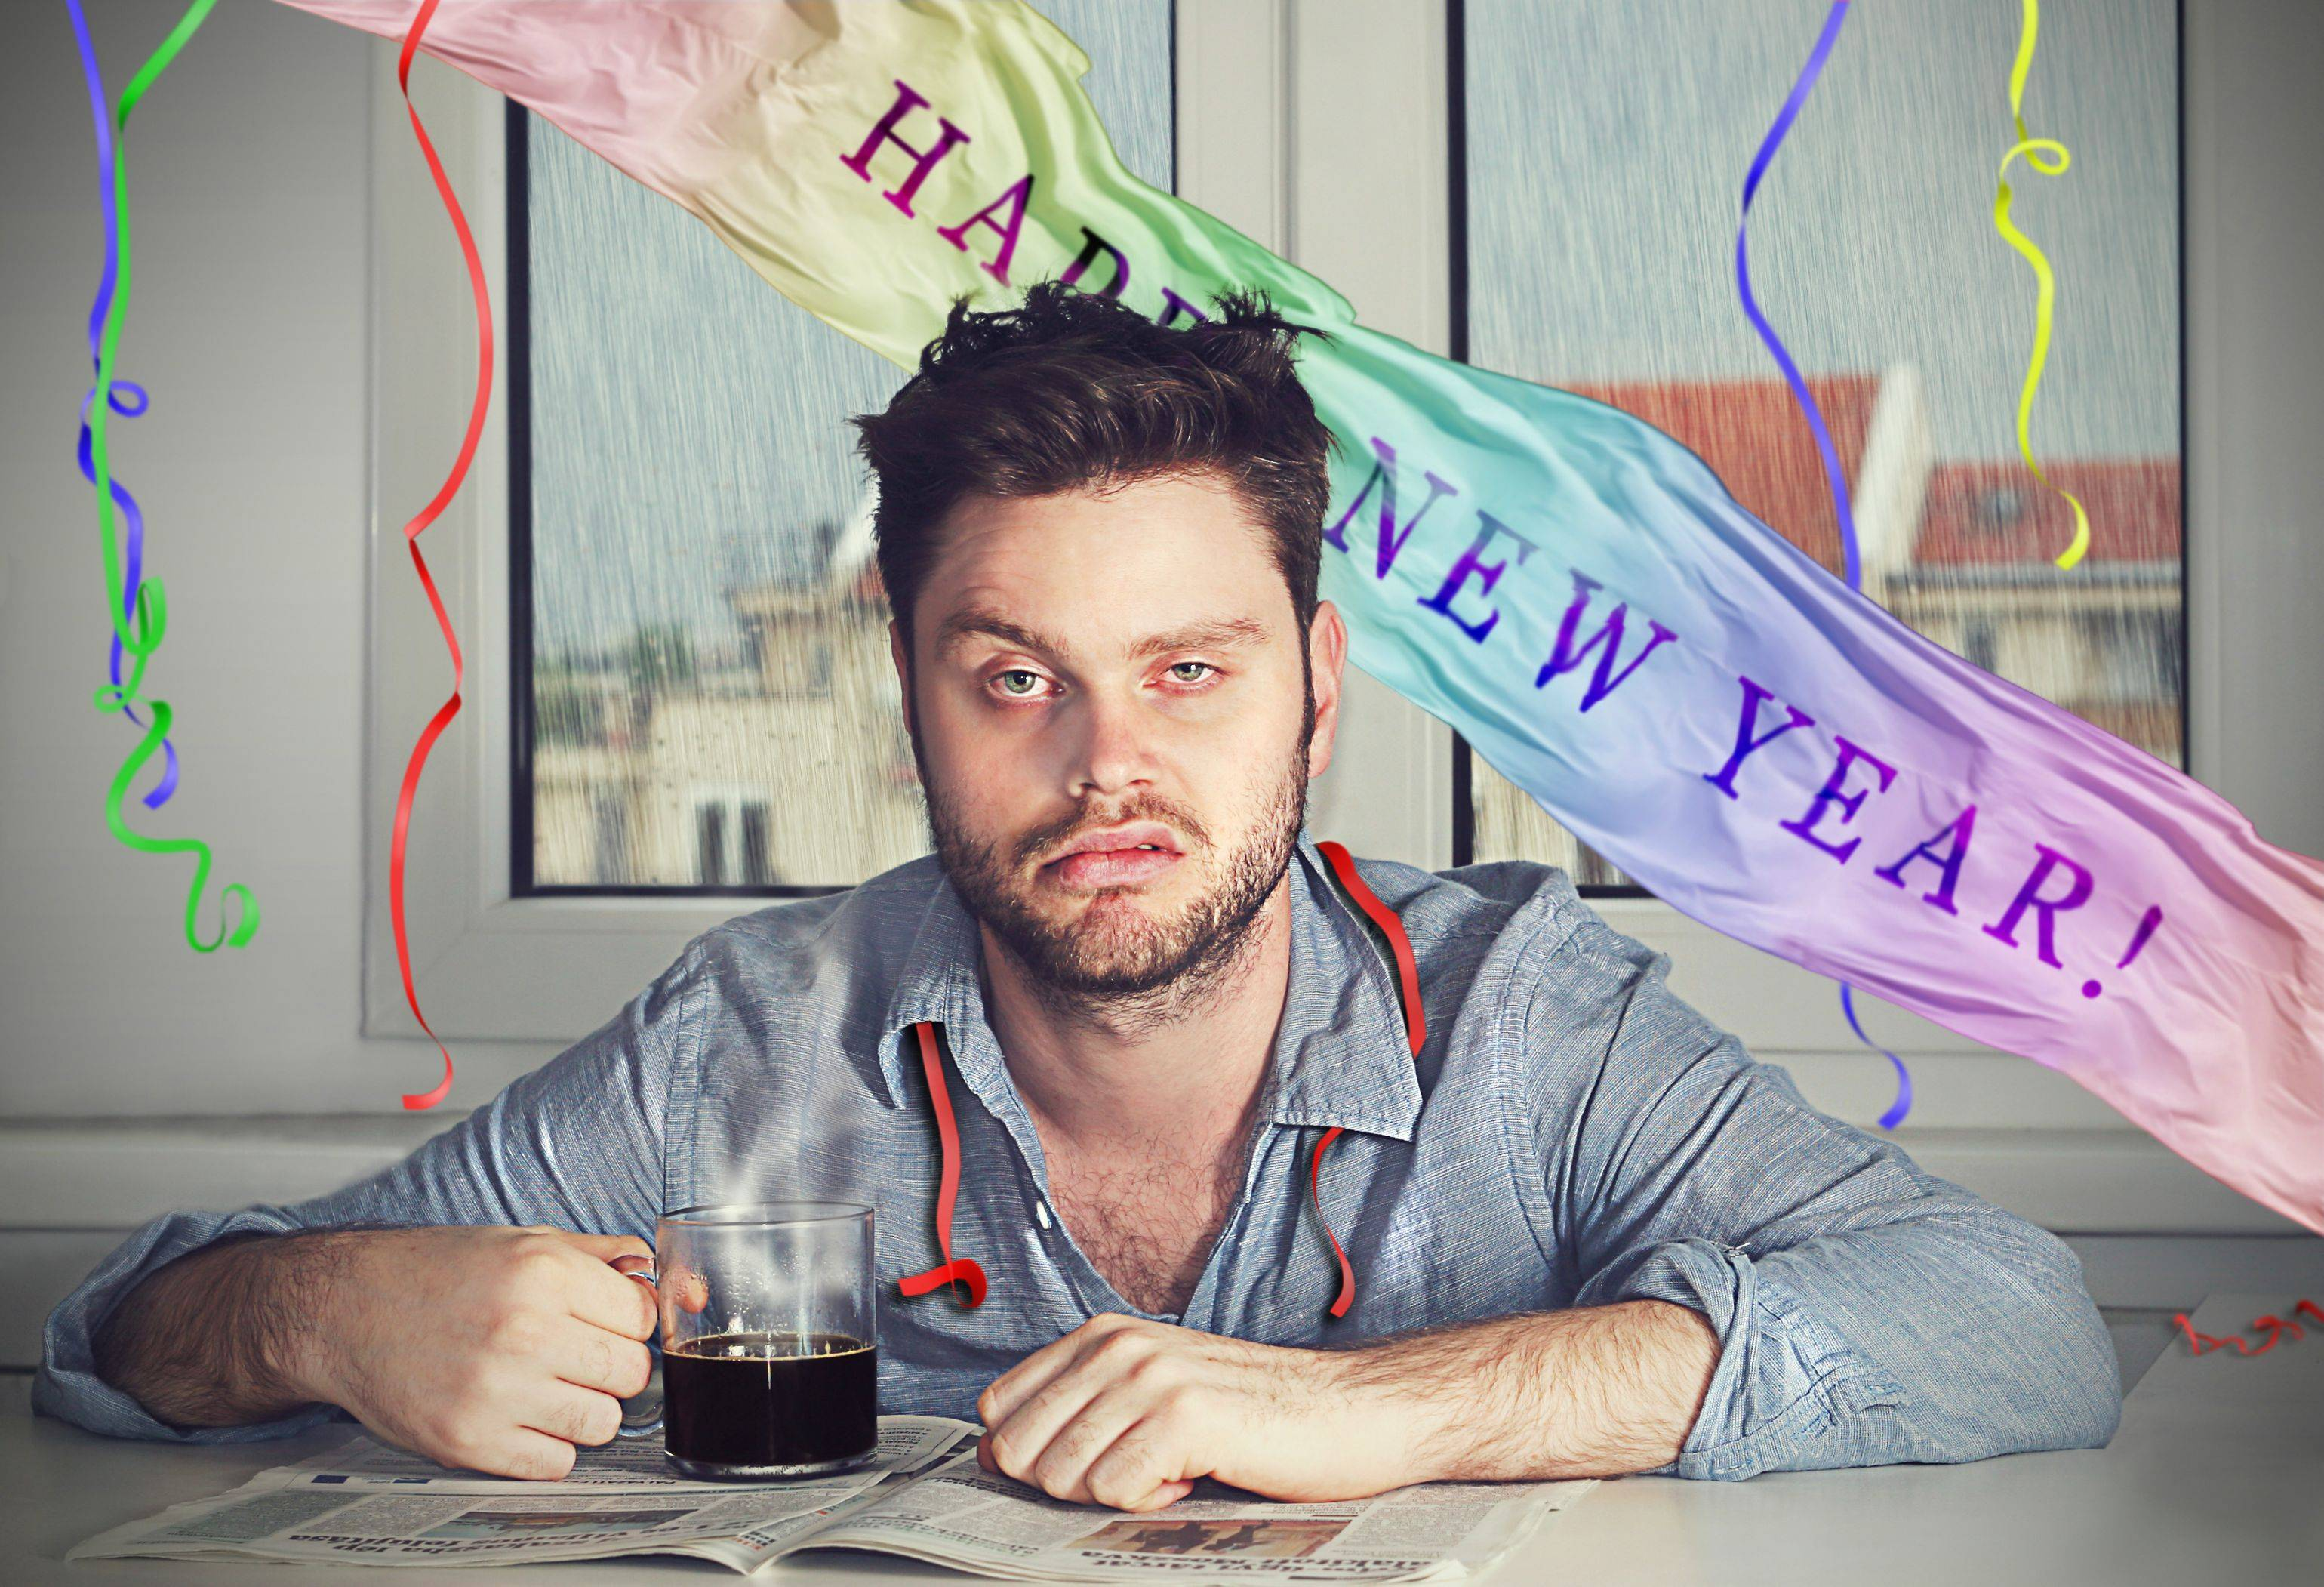 Here are the Top 5 Most Expensive Ways to Beat your New Year's Hangover